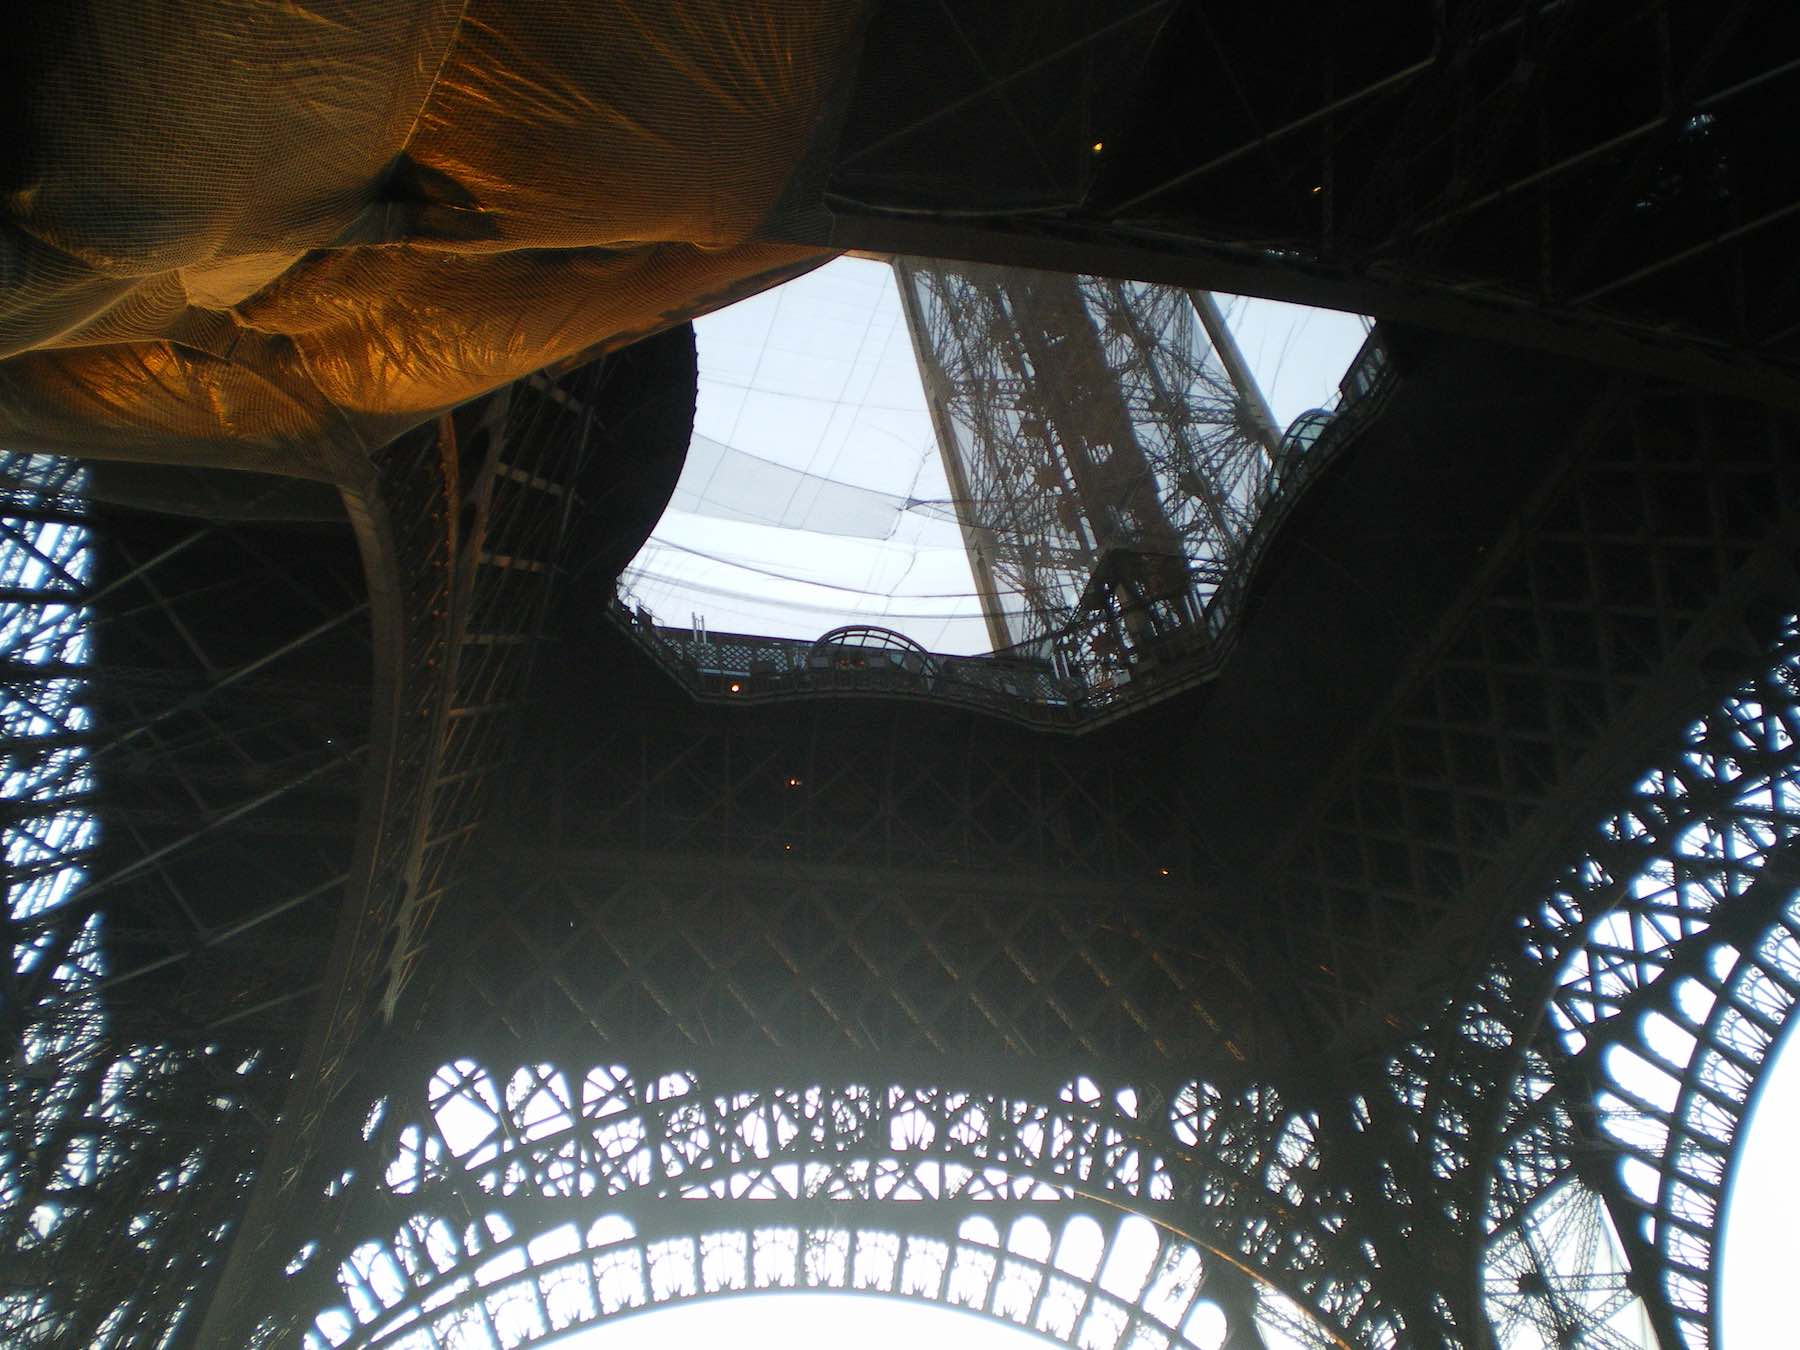 Looking up to the Eiffel Tower